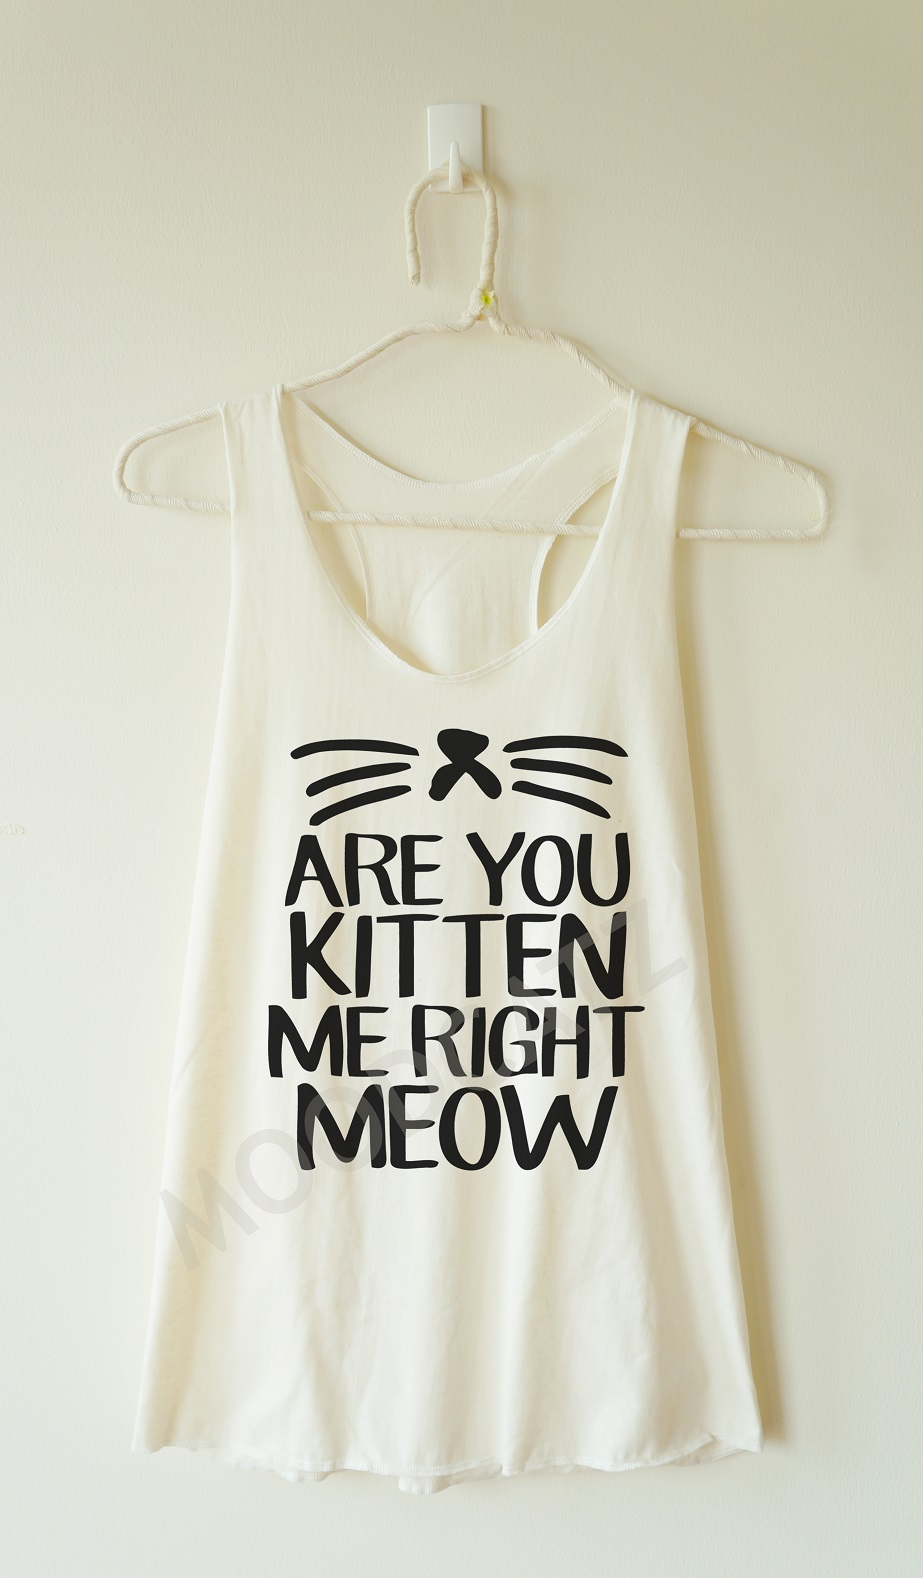 are_kitten_right_meow_shirt_cat_shirt_funny_tank_racer_women_shirt_tanks_tops_and_camis_6.jpg